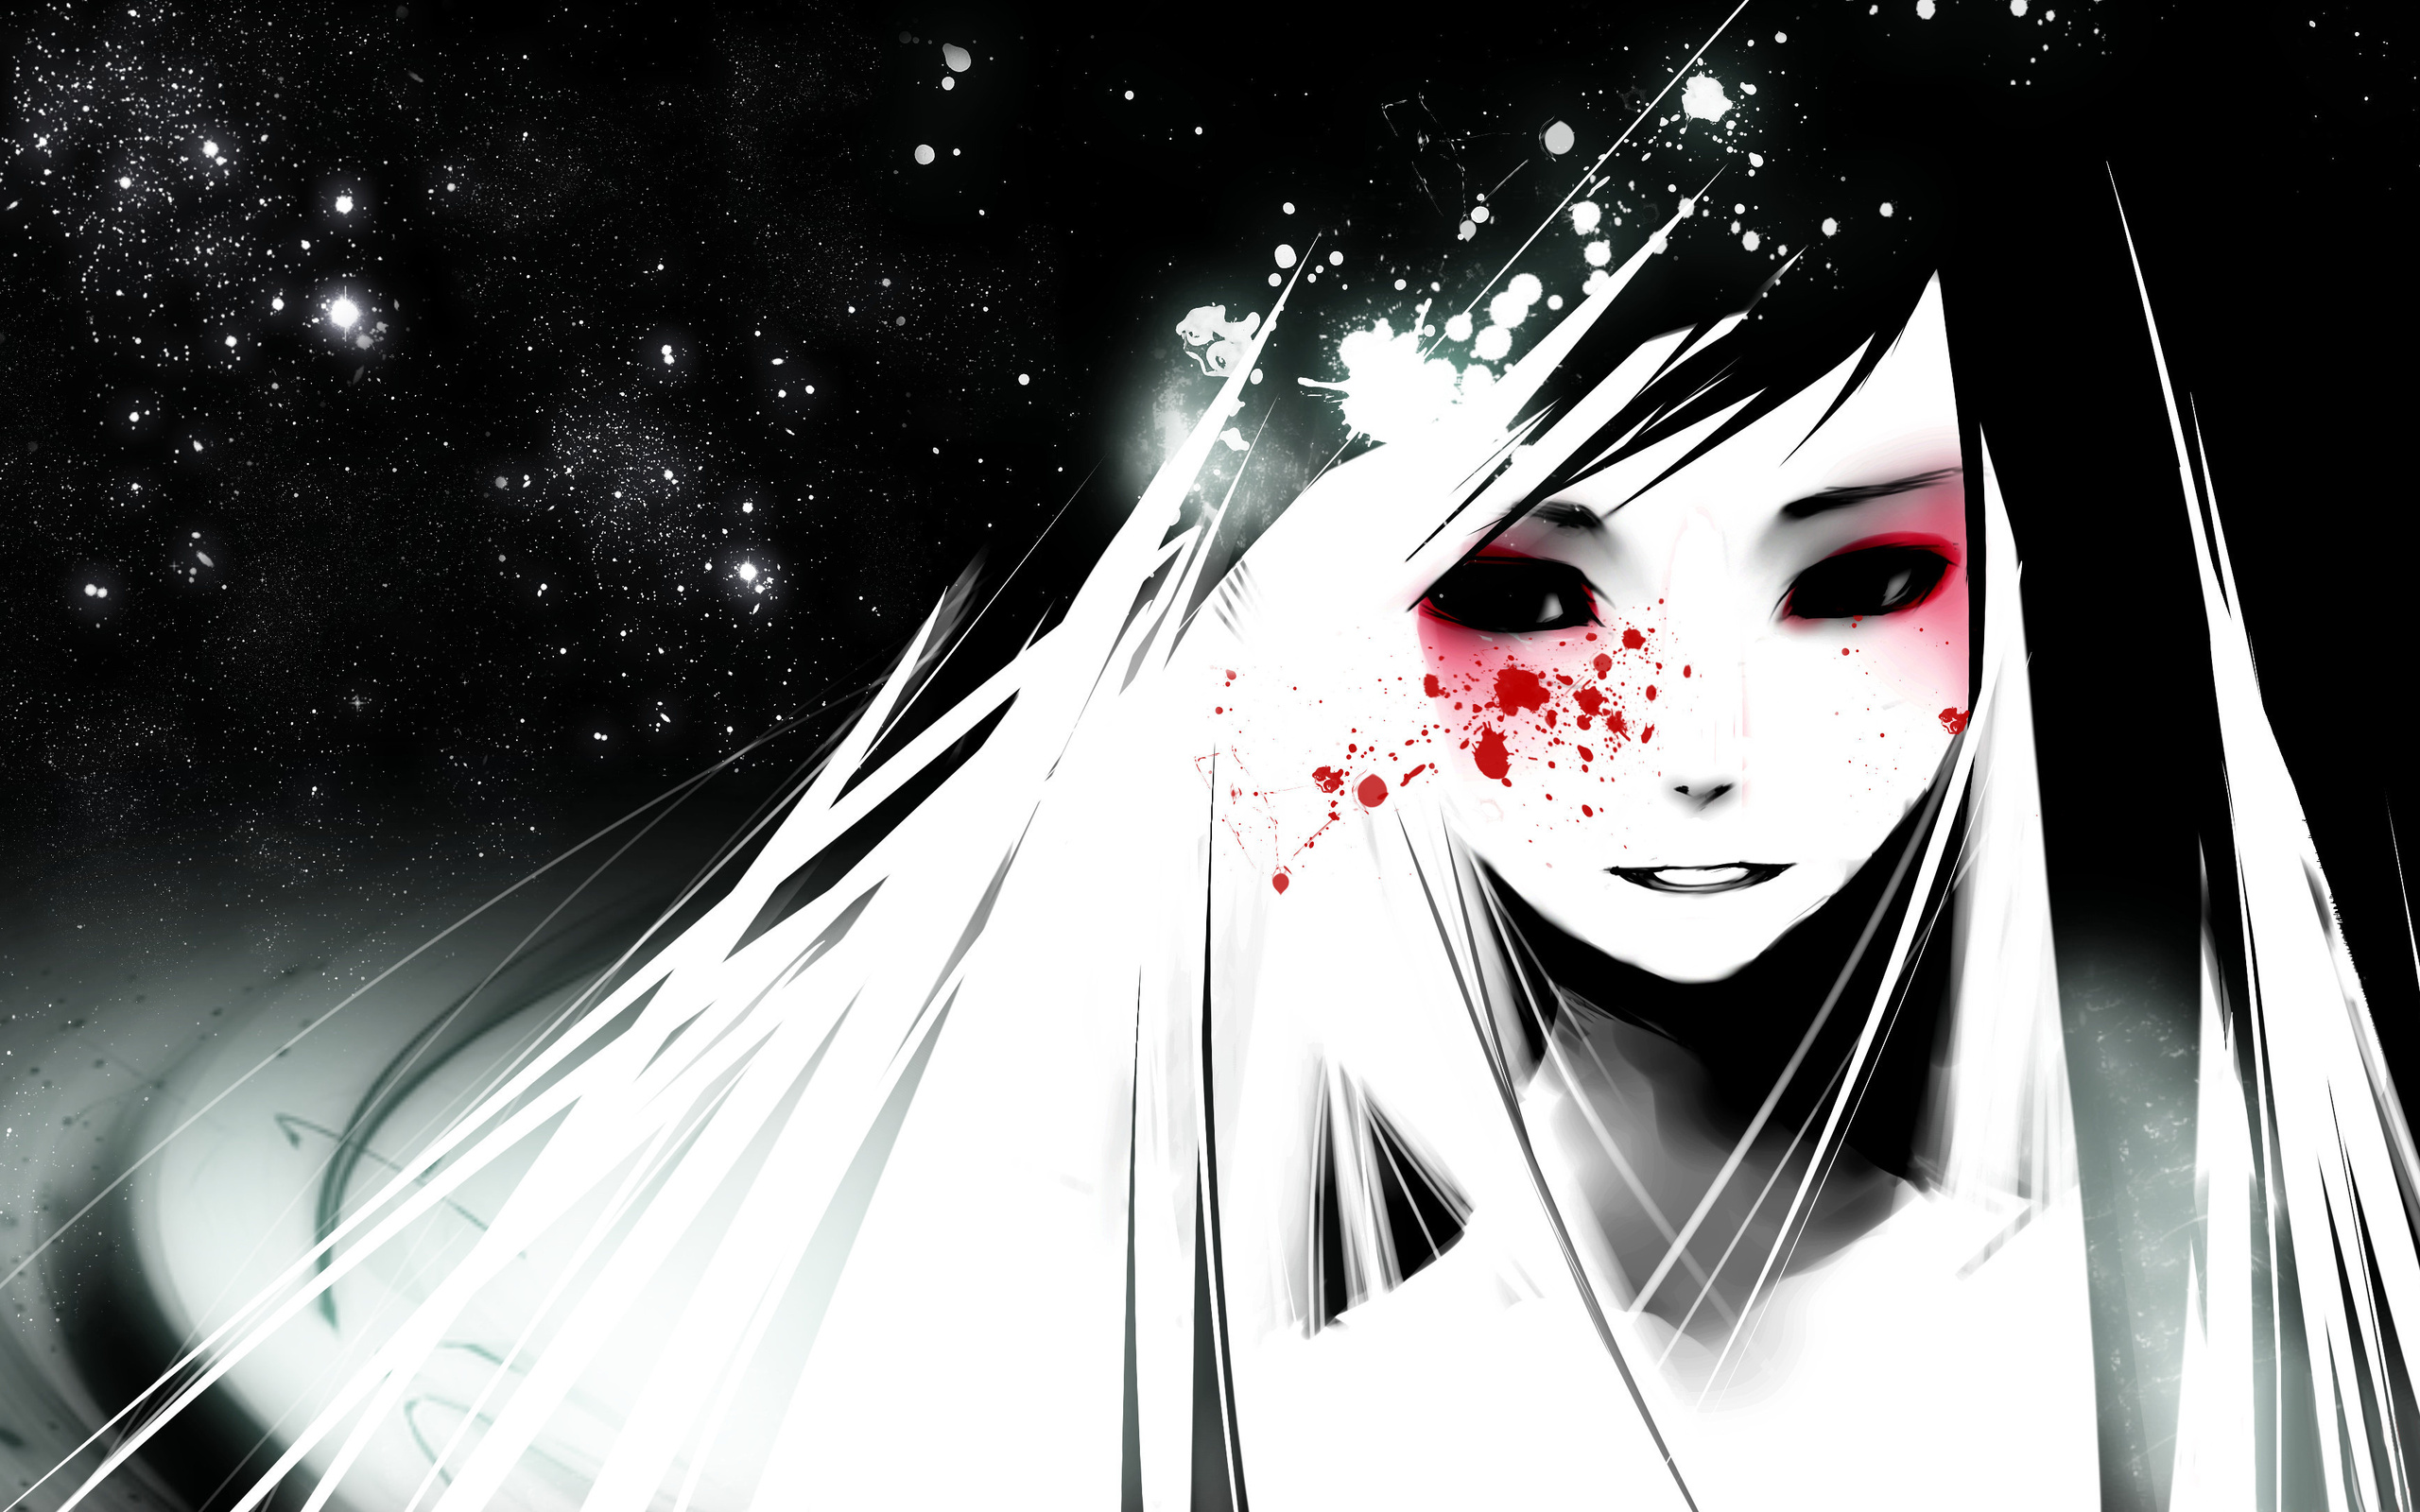 Dark Anime Wallpaper 1920X1080 Hd Widescreen 11 HD Wallpapers